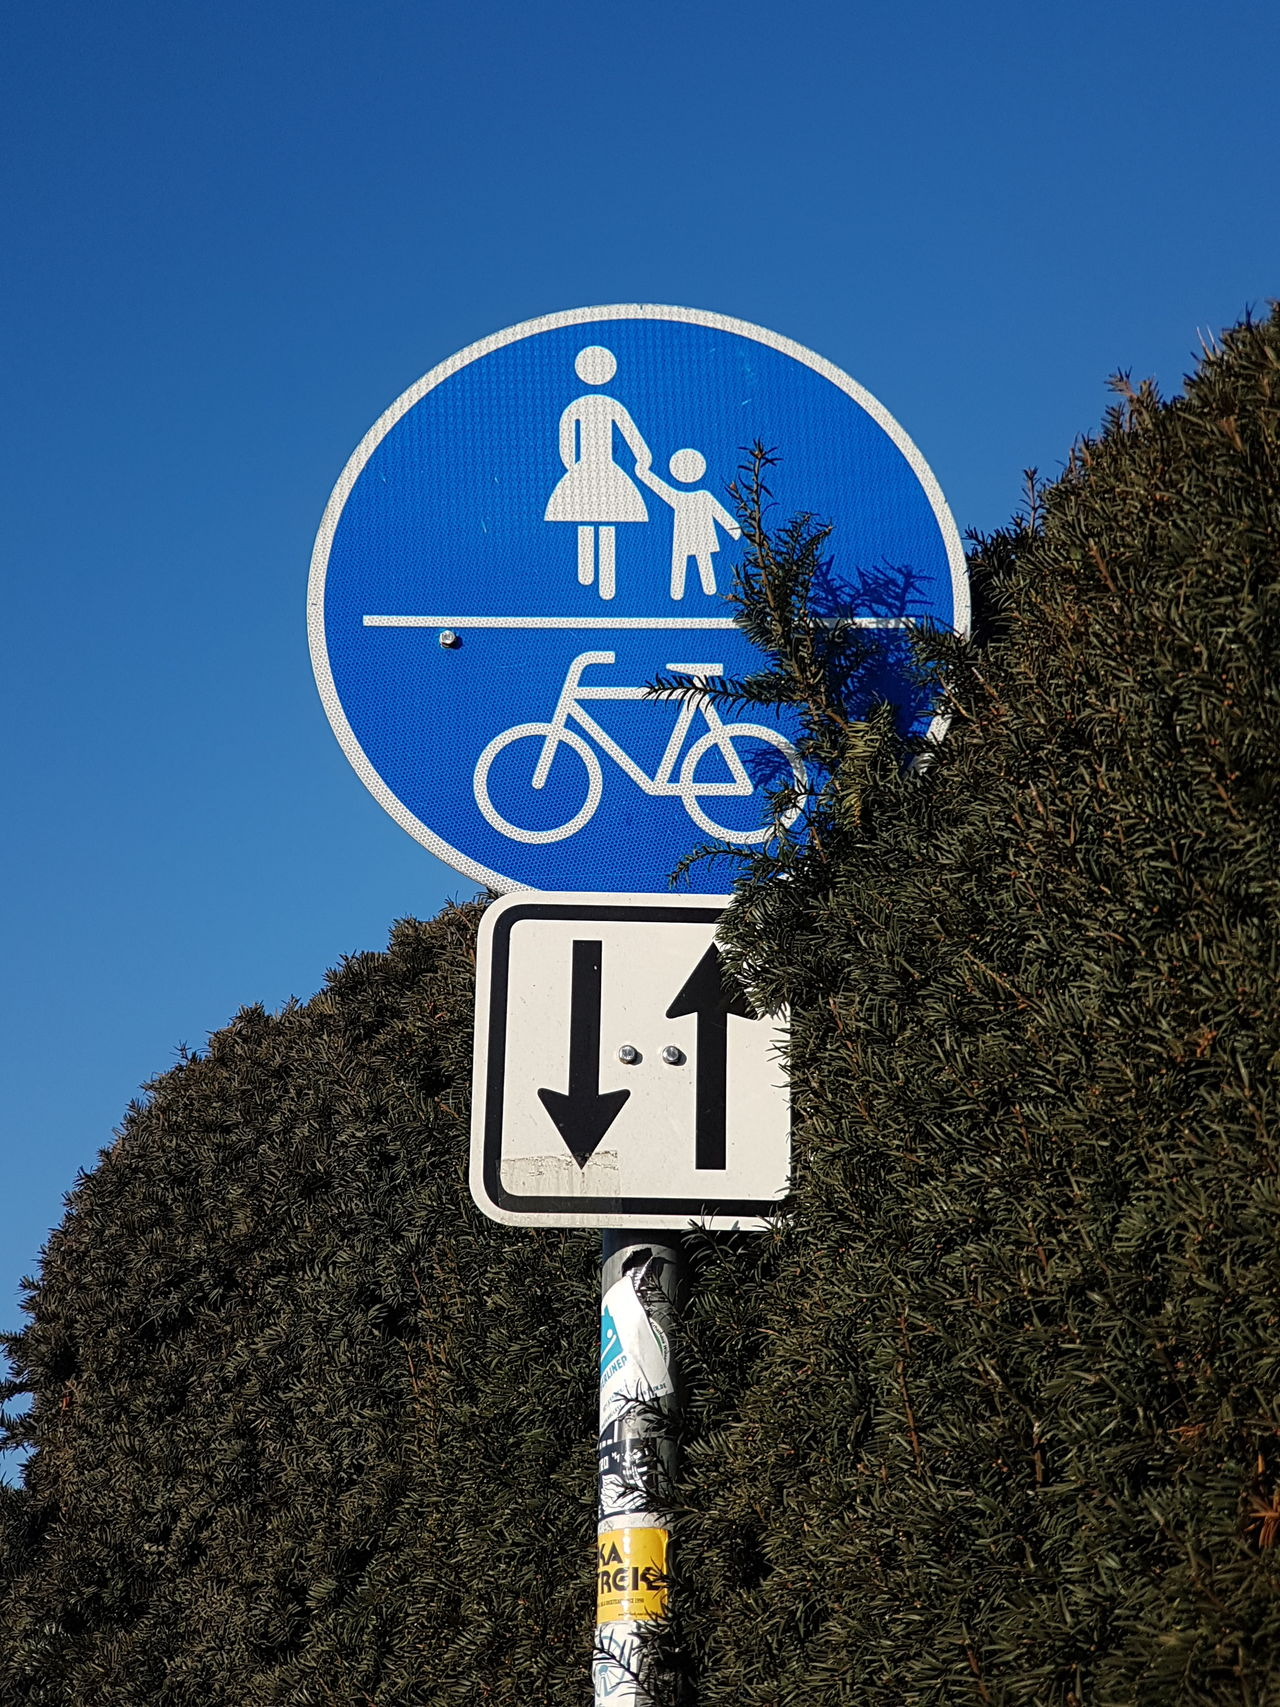 Logo Road Sign Together Walking Walking Around Signs_collection Signs Bycicle Ride Street Sign Street Signs Attention Arrow Sign Straight Lines Walking Around The City  Walking Together Cover Background Green Wall Road Signs